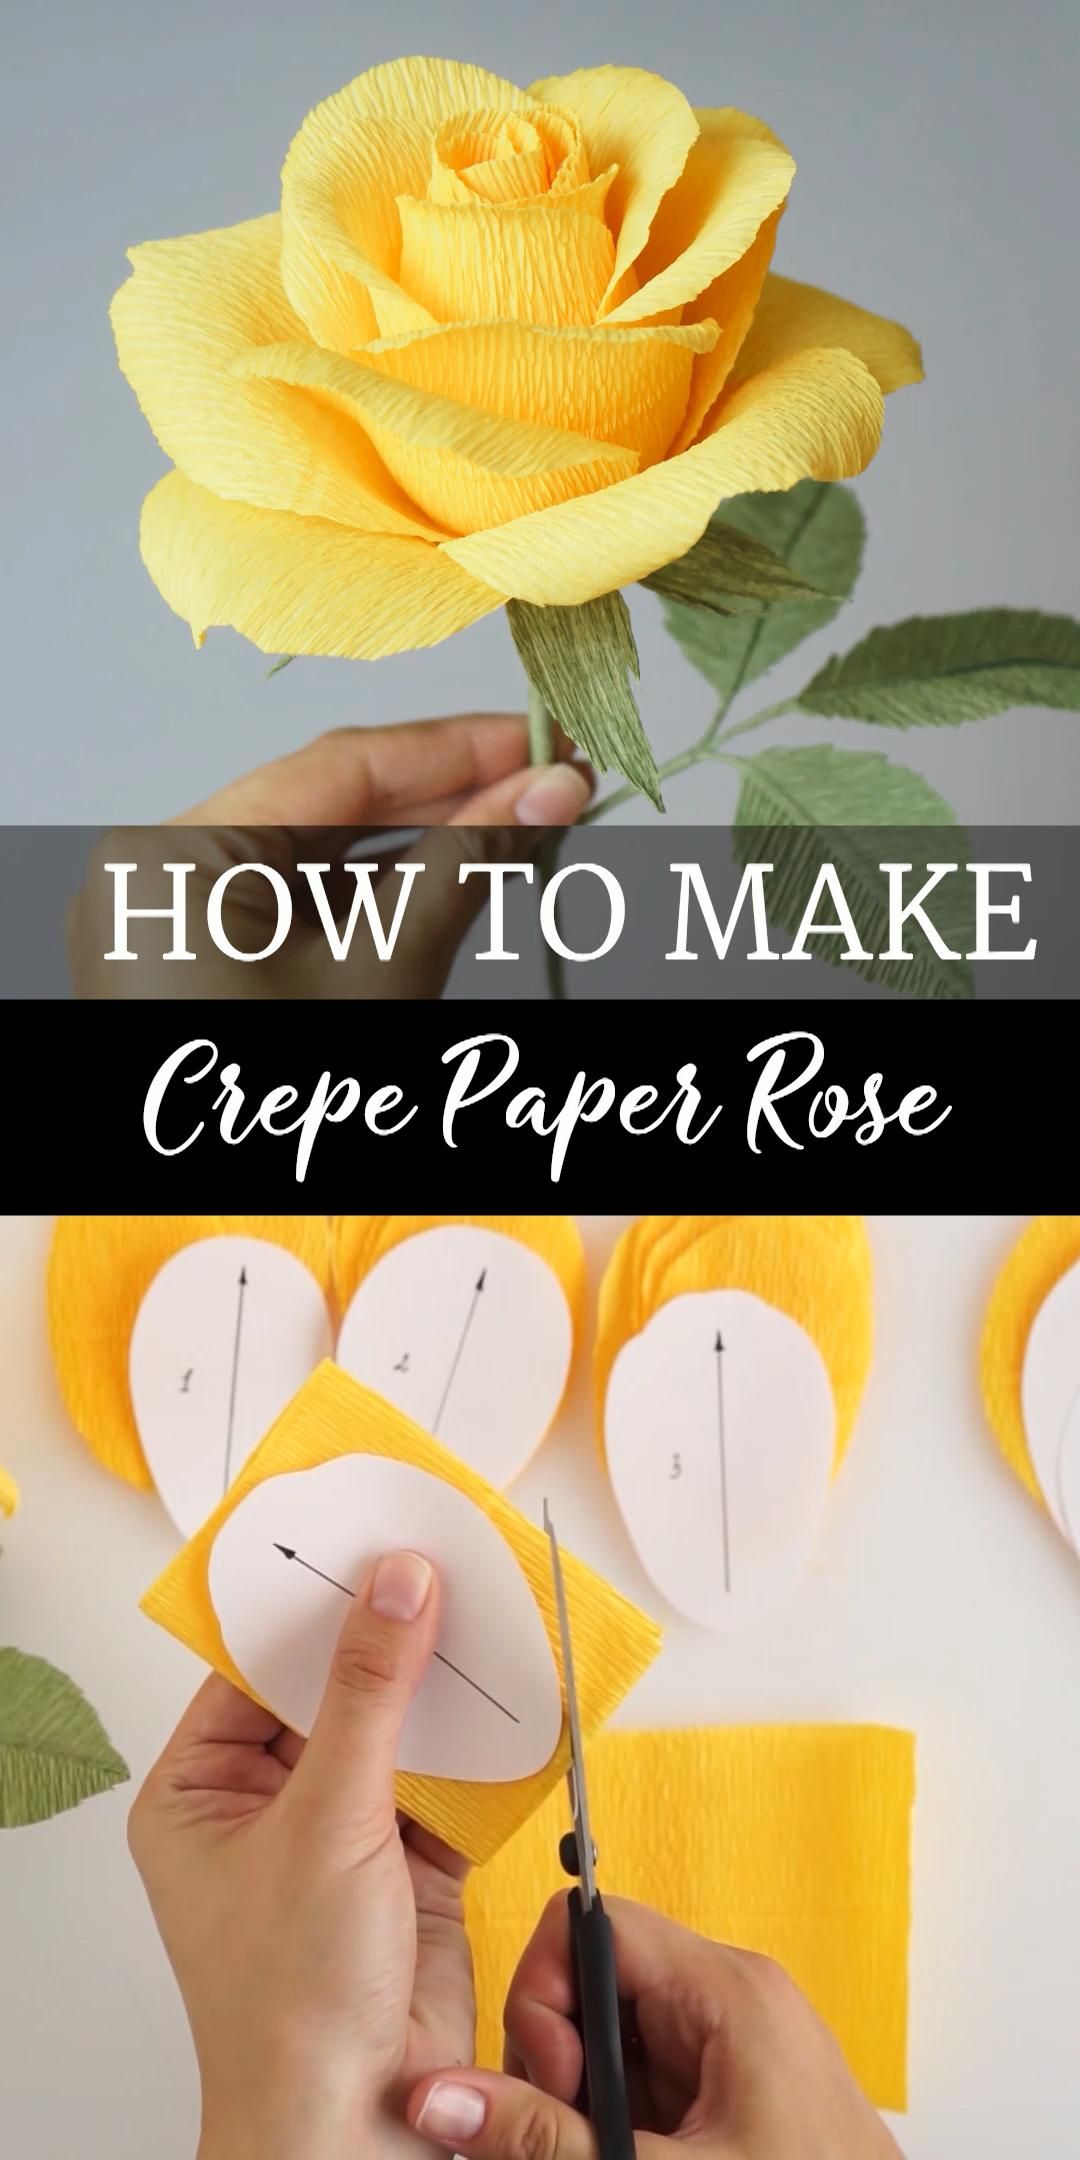 Crepe Paper Rose Video Tutorial & PDF Templates, Crepe Paper Flower Tutorial, 3D Paper Rose Printable, Crepe Paper Rose with stem and leaves